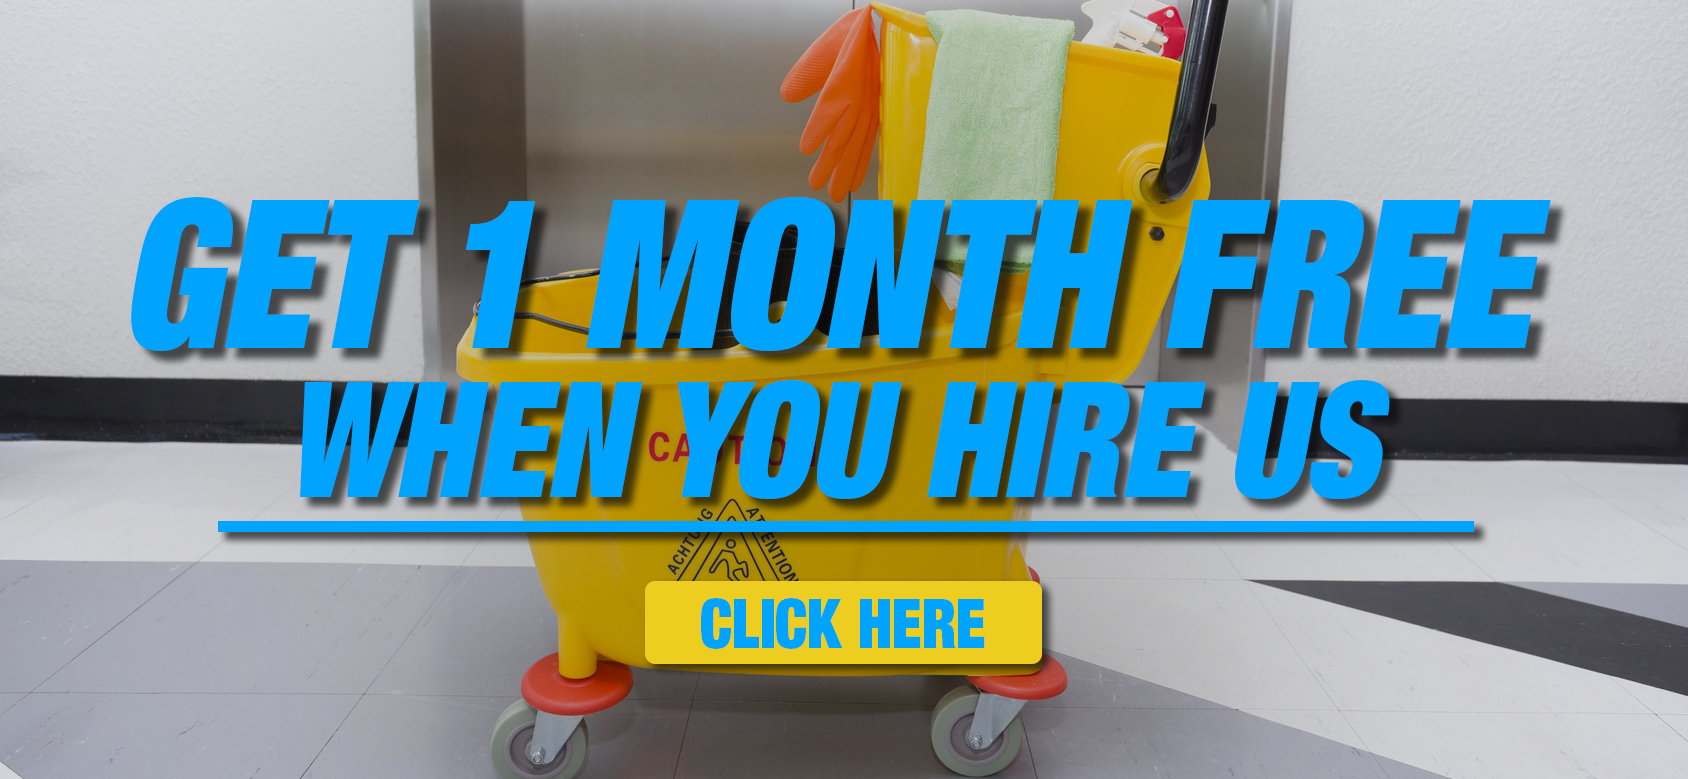 Special 1 Month Offer - New Look Maintenance